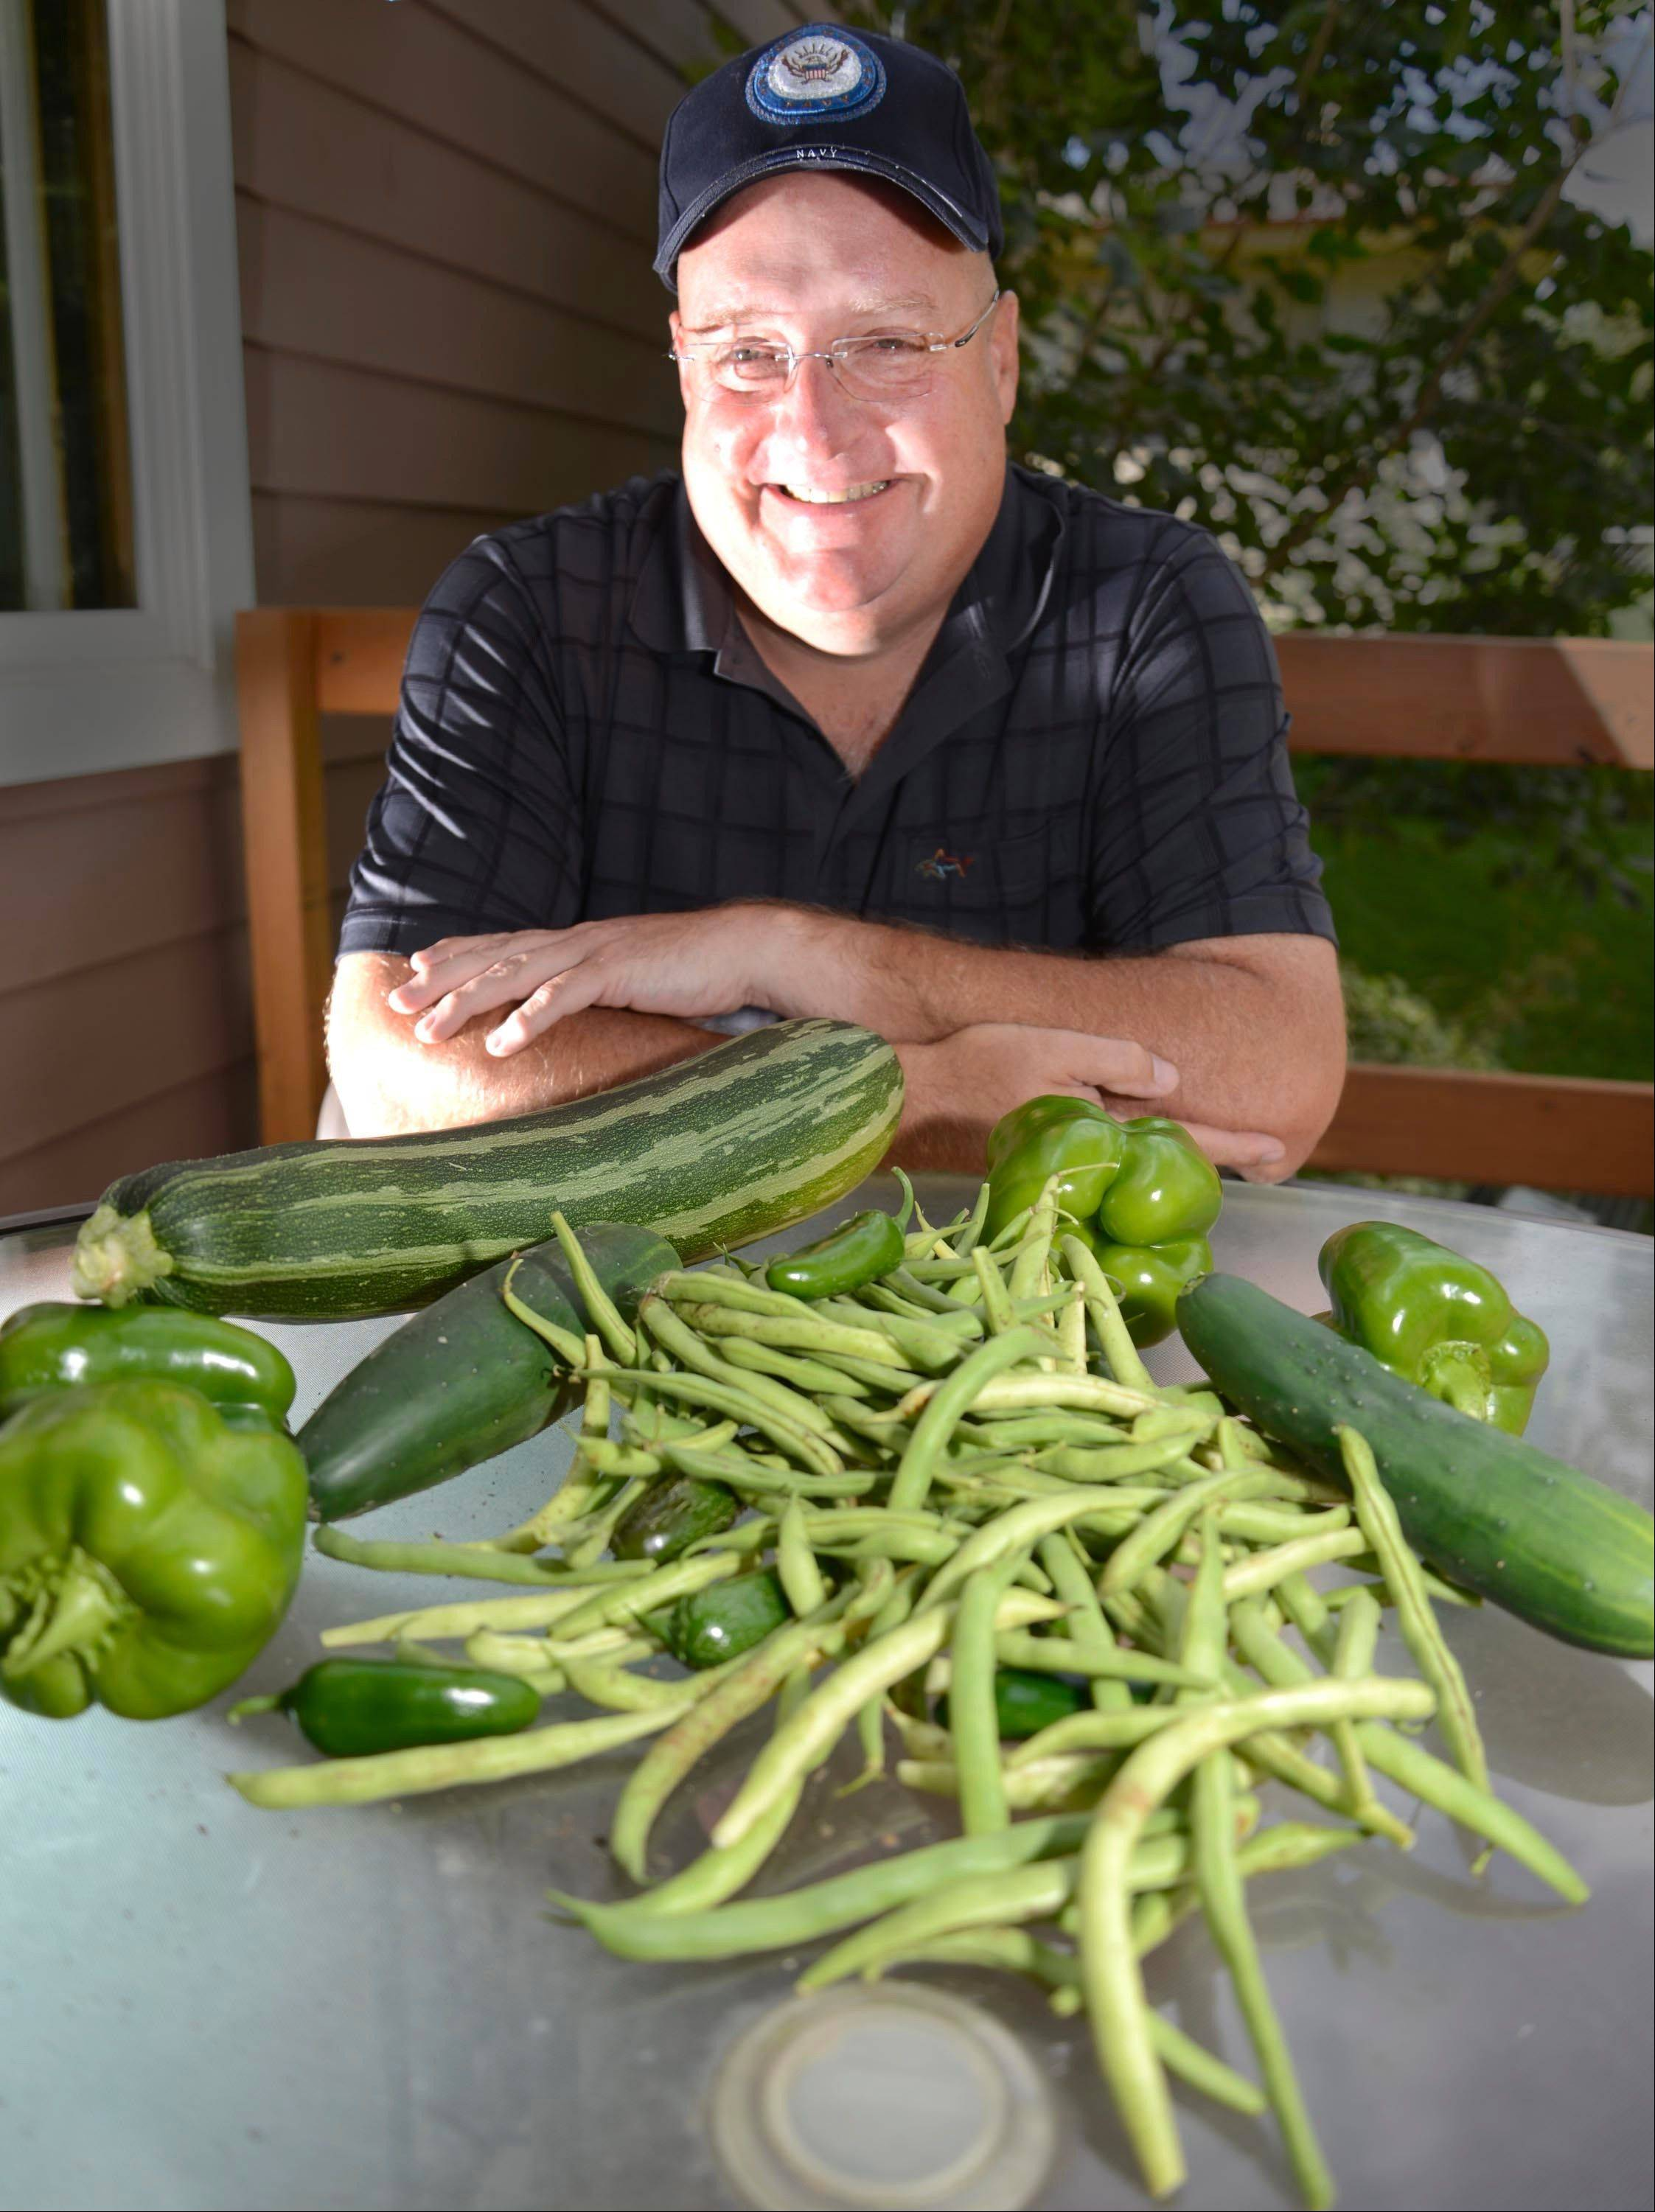 Cook of the Week Challenge champion Dan Rich of Elgin is shown with vegetables from his garden. Rich will be on hand at a Daily Herald event to help demonstrate creative snacking ideas for Super Bowl parties.